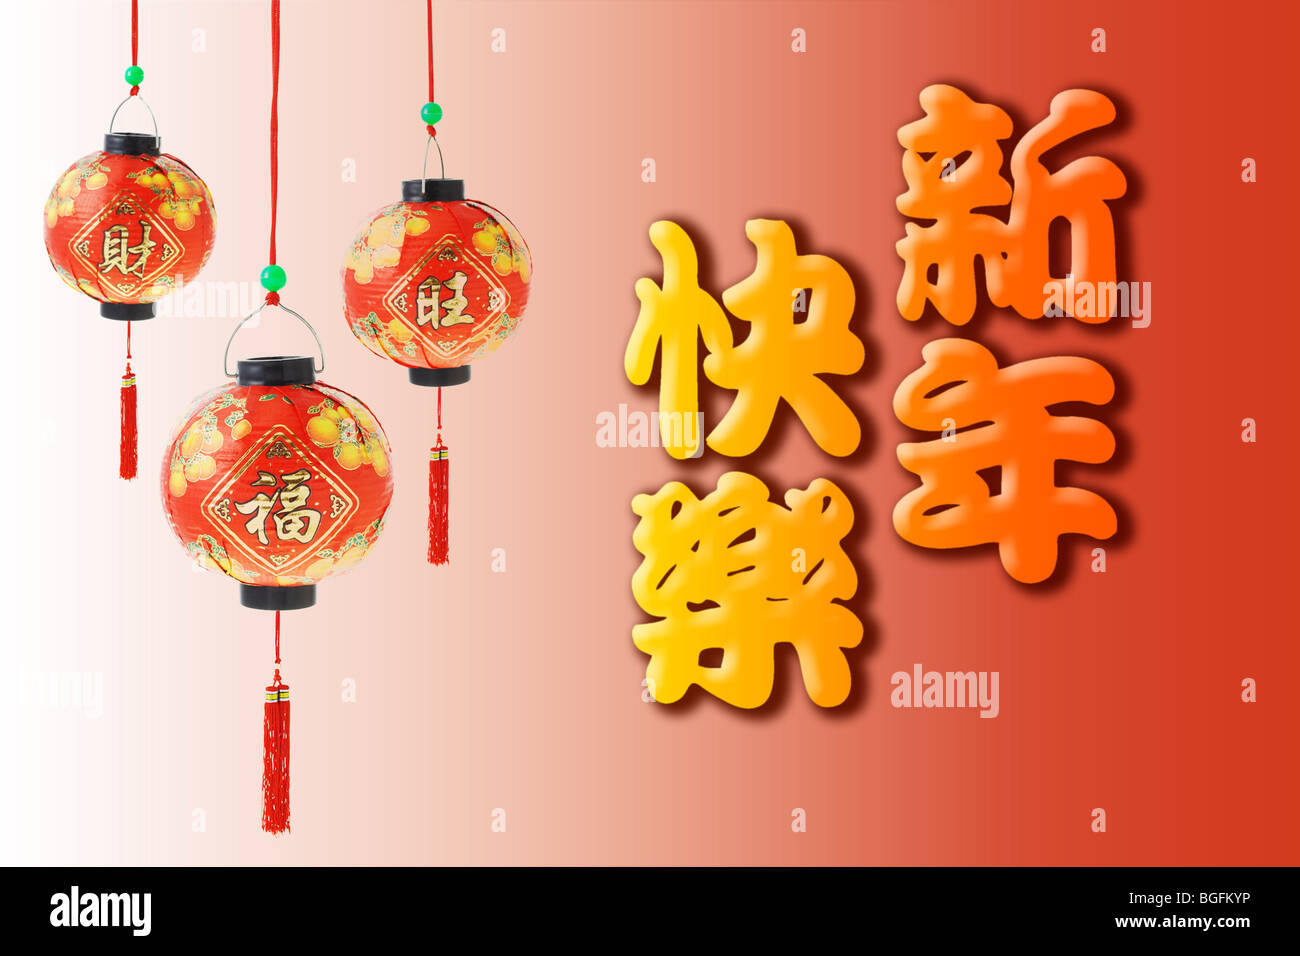 Chinese New Year Greetings With Decorative Red Lantern Ornaments On